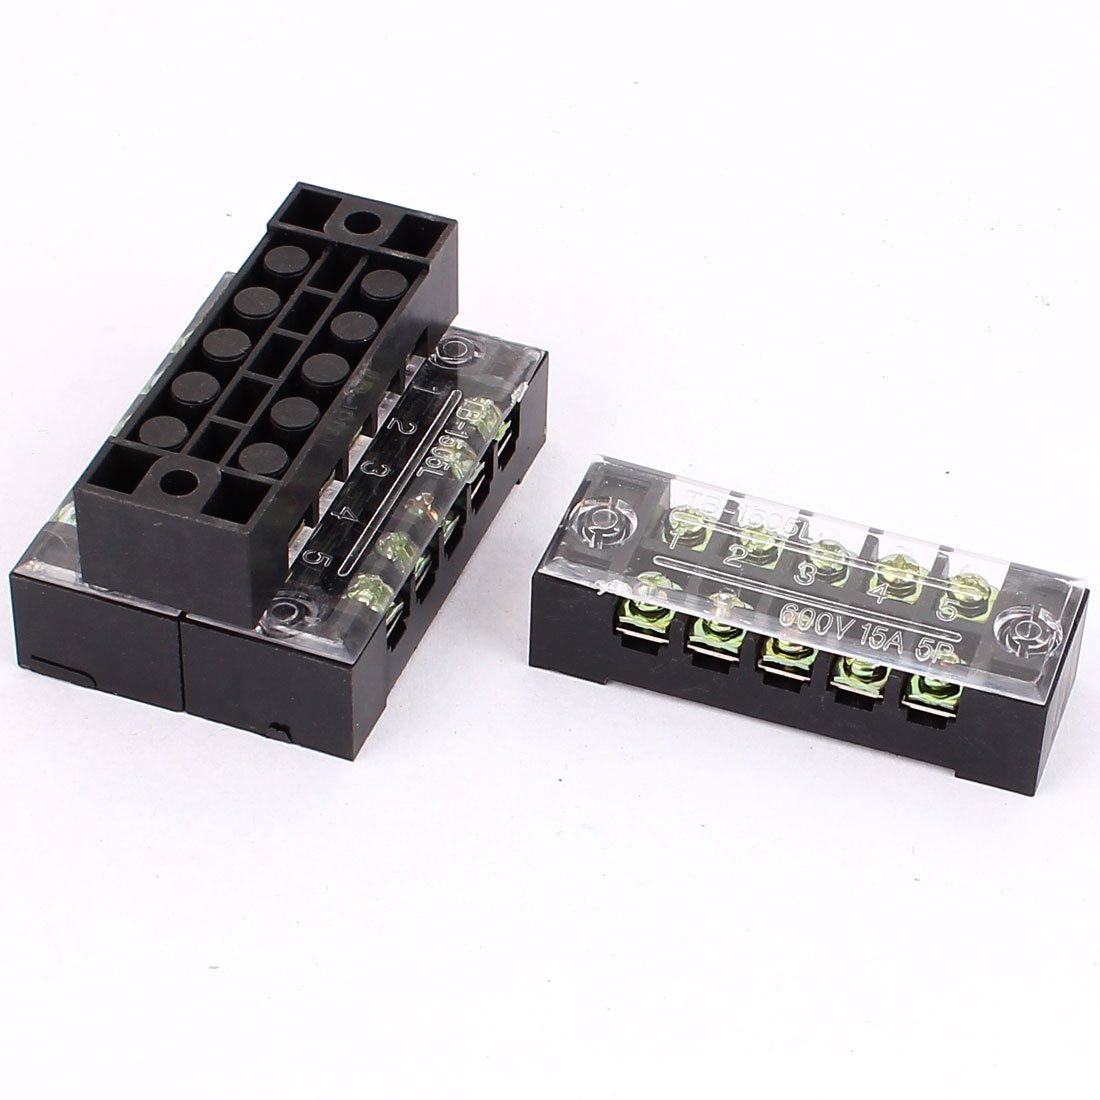 uxcell 4 Pcs 600V 15A 5P Dual Row Barrier Terminal Block Wire Connector Bar